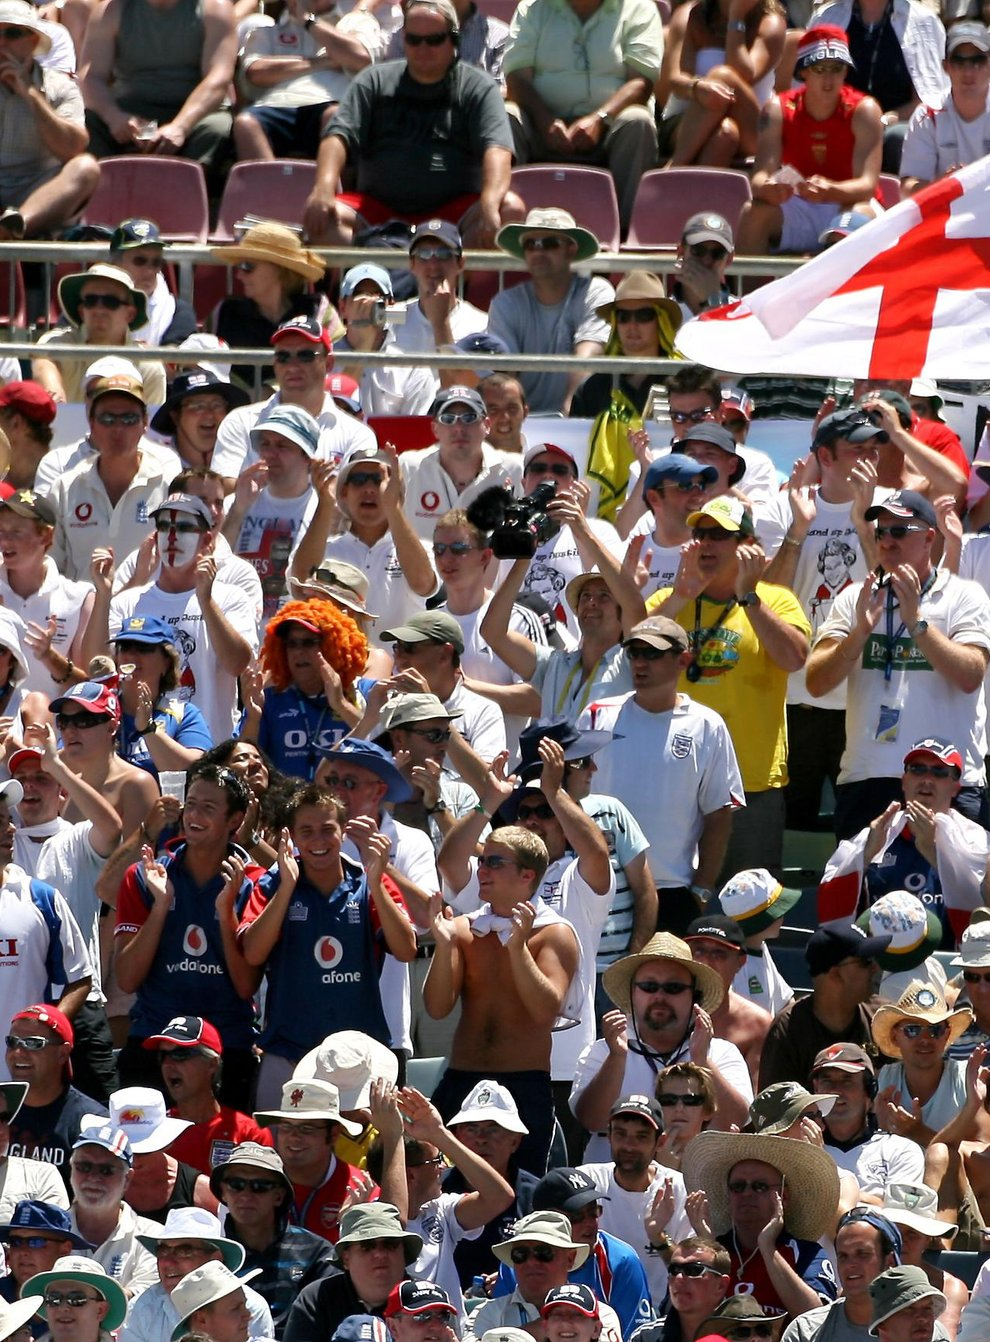 England's Barmy Army vowed to make up for lost time at the T20 World Cup (Gareth Copley/PA)